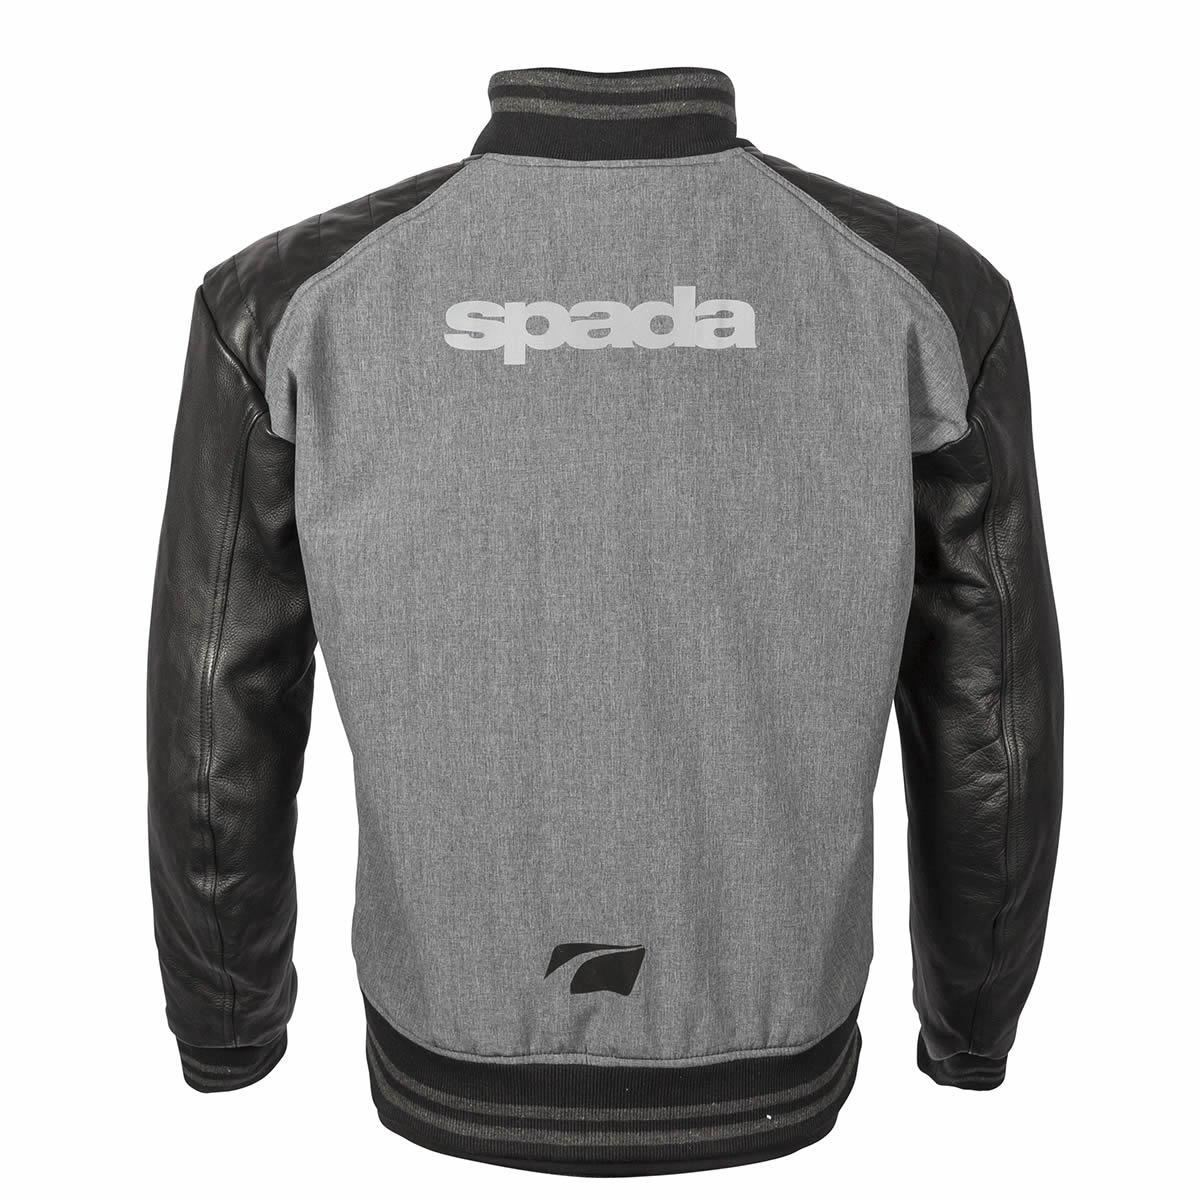 Spada-Campus-Yale-Men-039-s-Motorcycle-Jacket-Grey-Leather-Textile-CE-Armour-Summer miniature 7